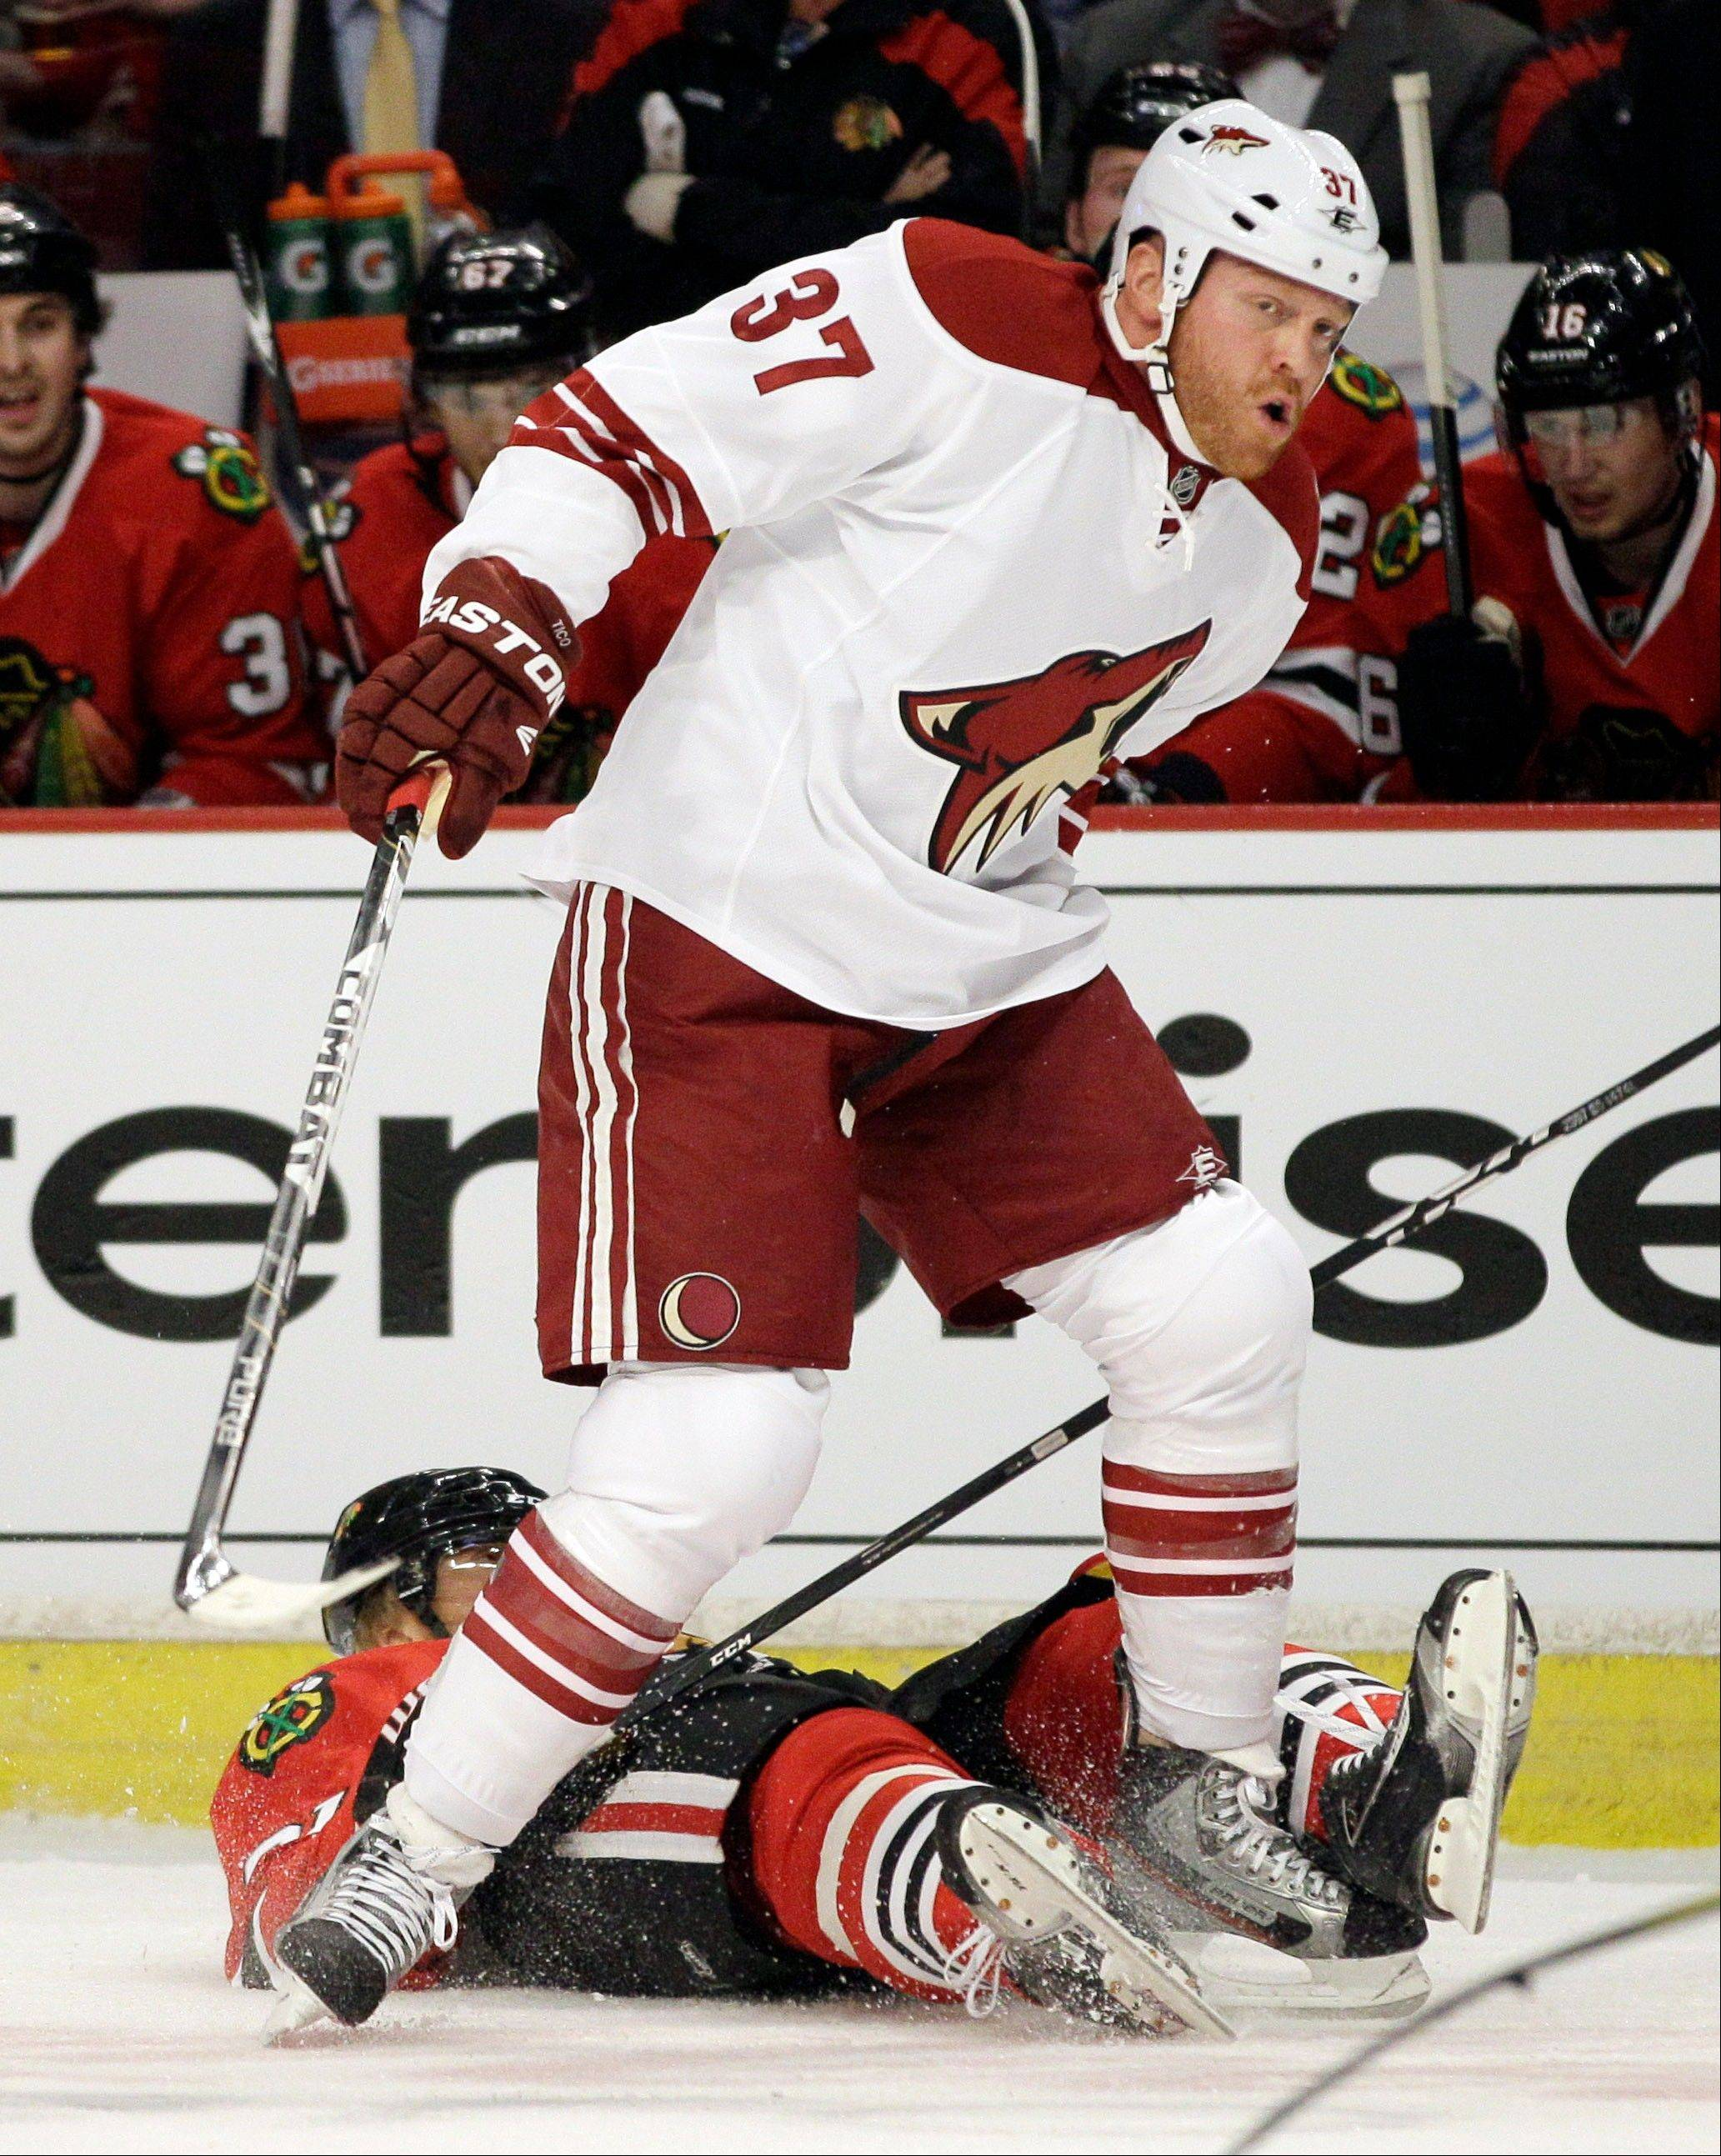 Marian Hossa falls down after hit from Phoenix Coyotes' Raffi Torres (37) during the first period of Game 3 of an NHL hockey Stanley Cup first-round playoff series in Chicago, Tuesday, April 17, 2012.